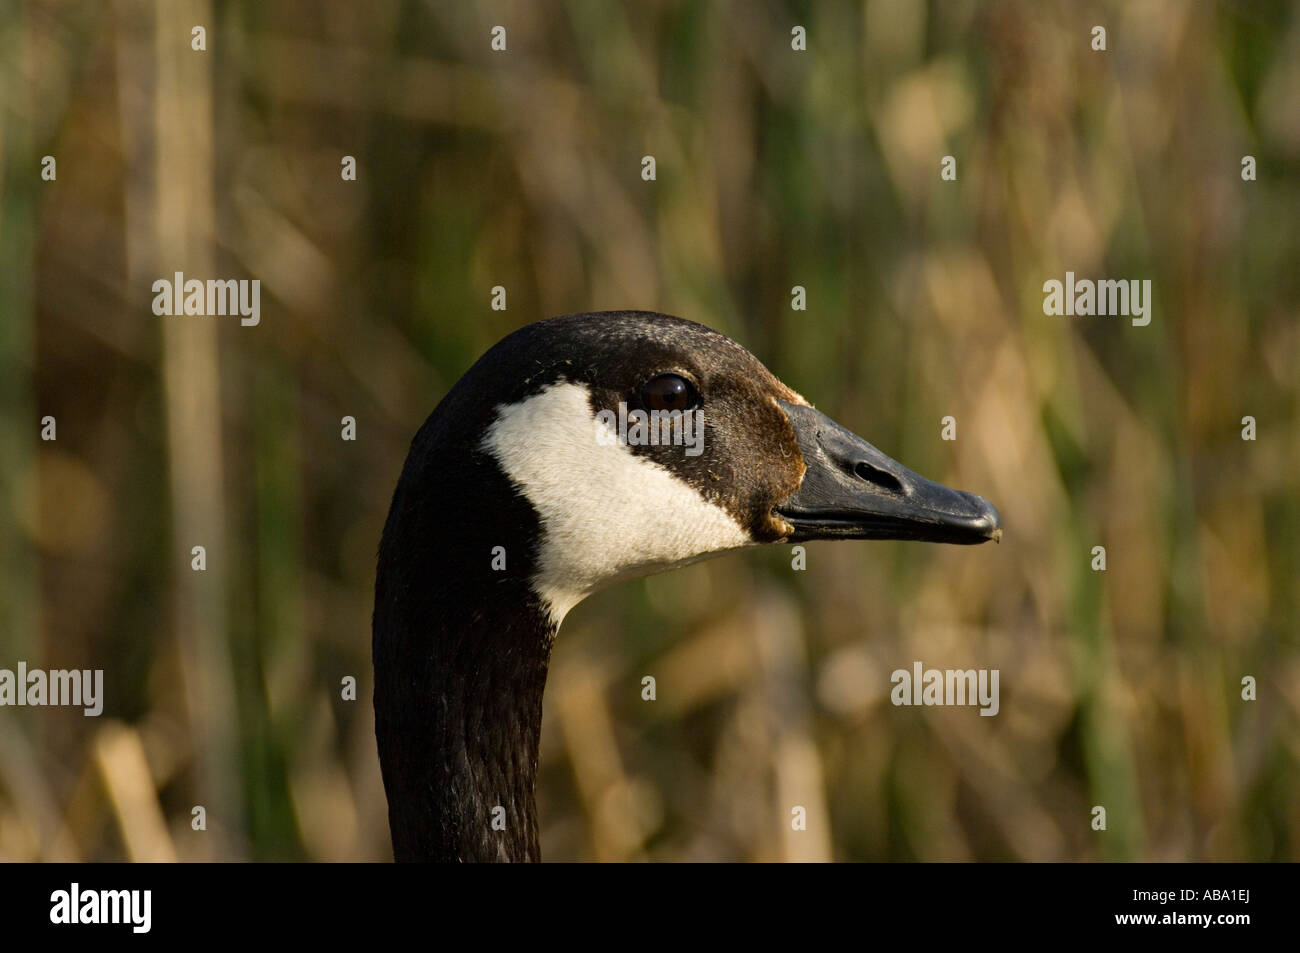 An adult canada goose close up portrait stock photo 12826745 alamy an adult canada goose close up portrait biocorpaavc Gallery